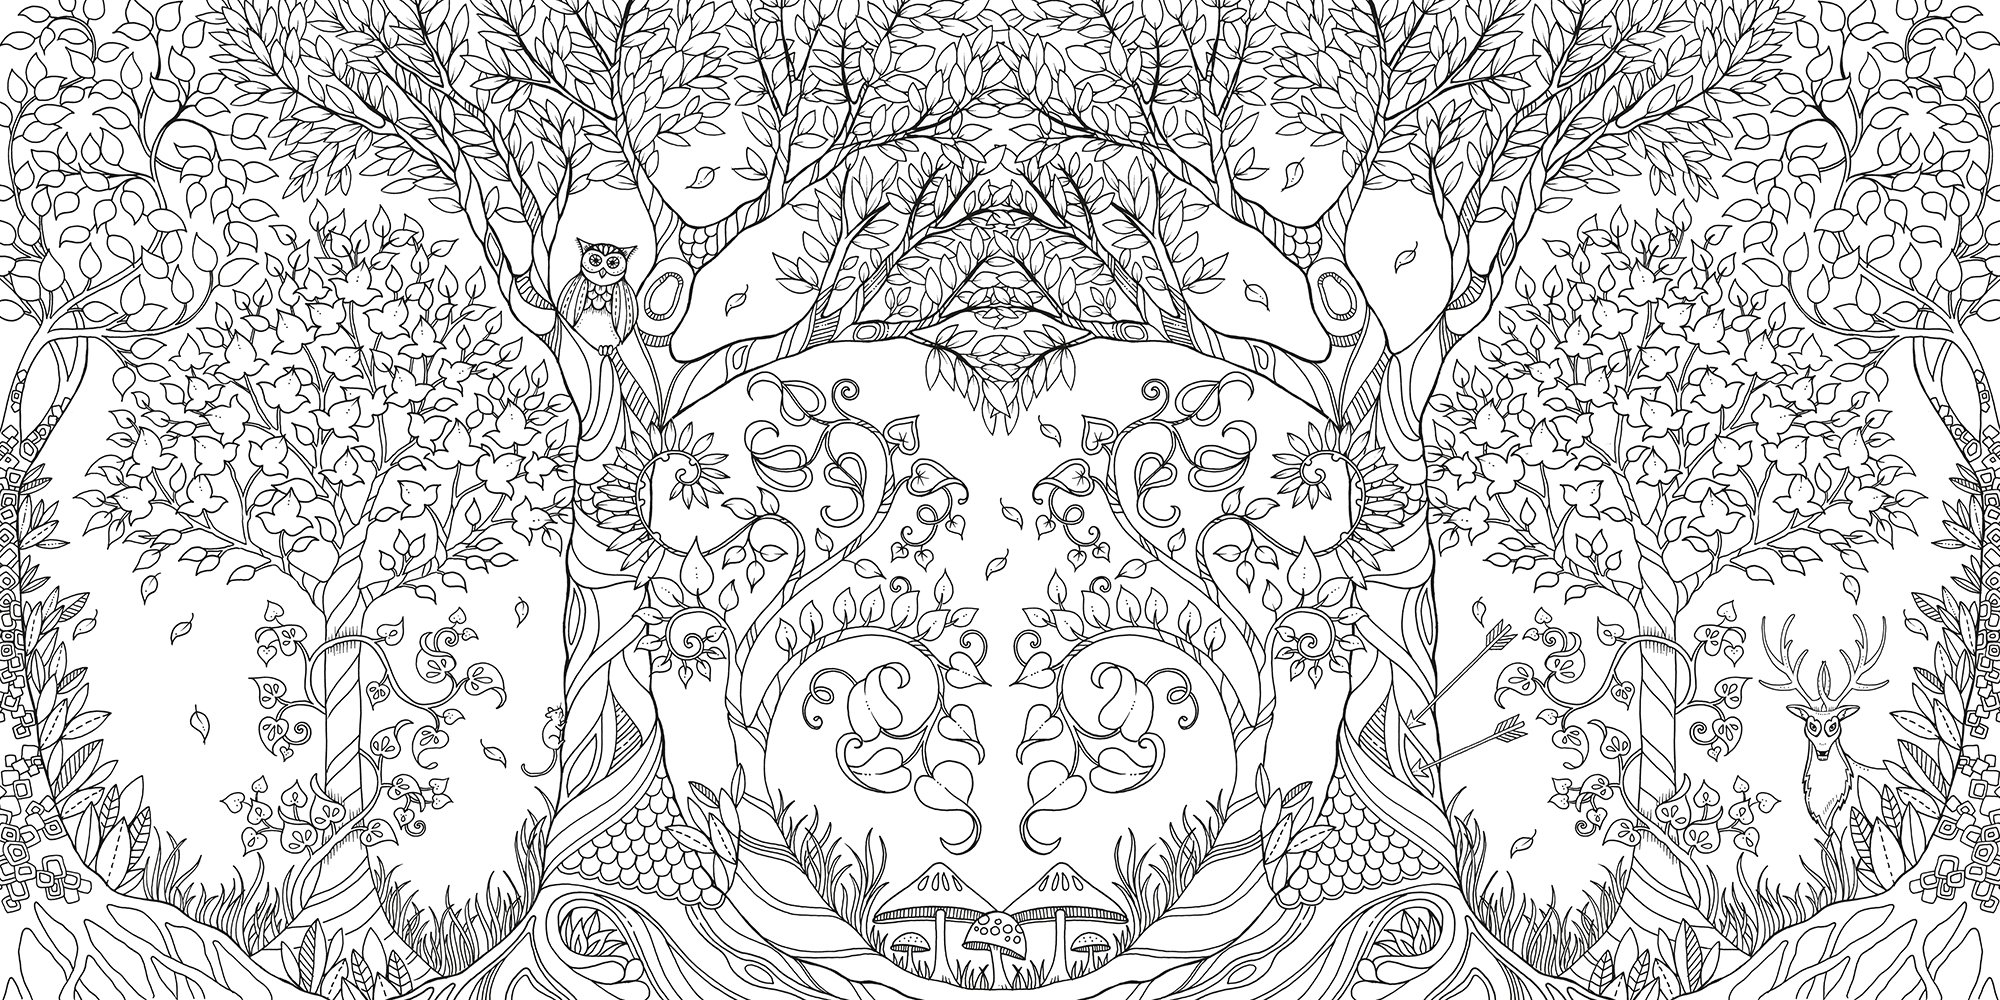 Enchanted forest coloring book website - Amazon Com Enchanted Forest An Inky Quest Coloring Book 6063887956574 Johanna Basford Books